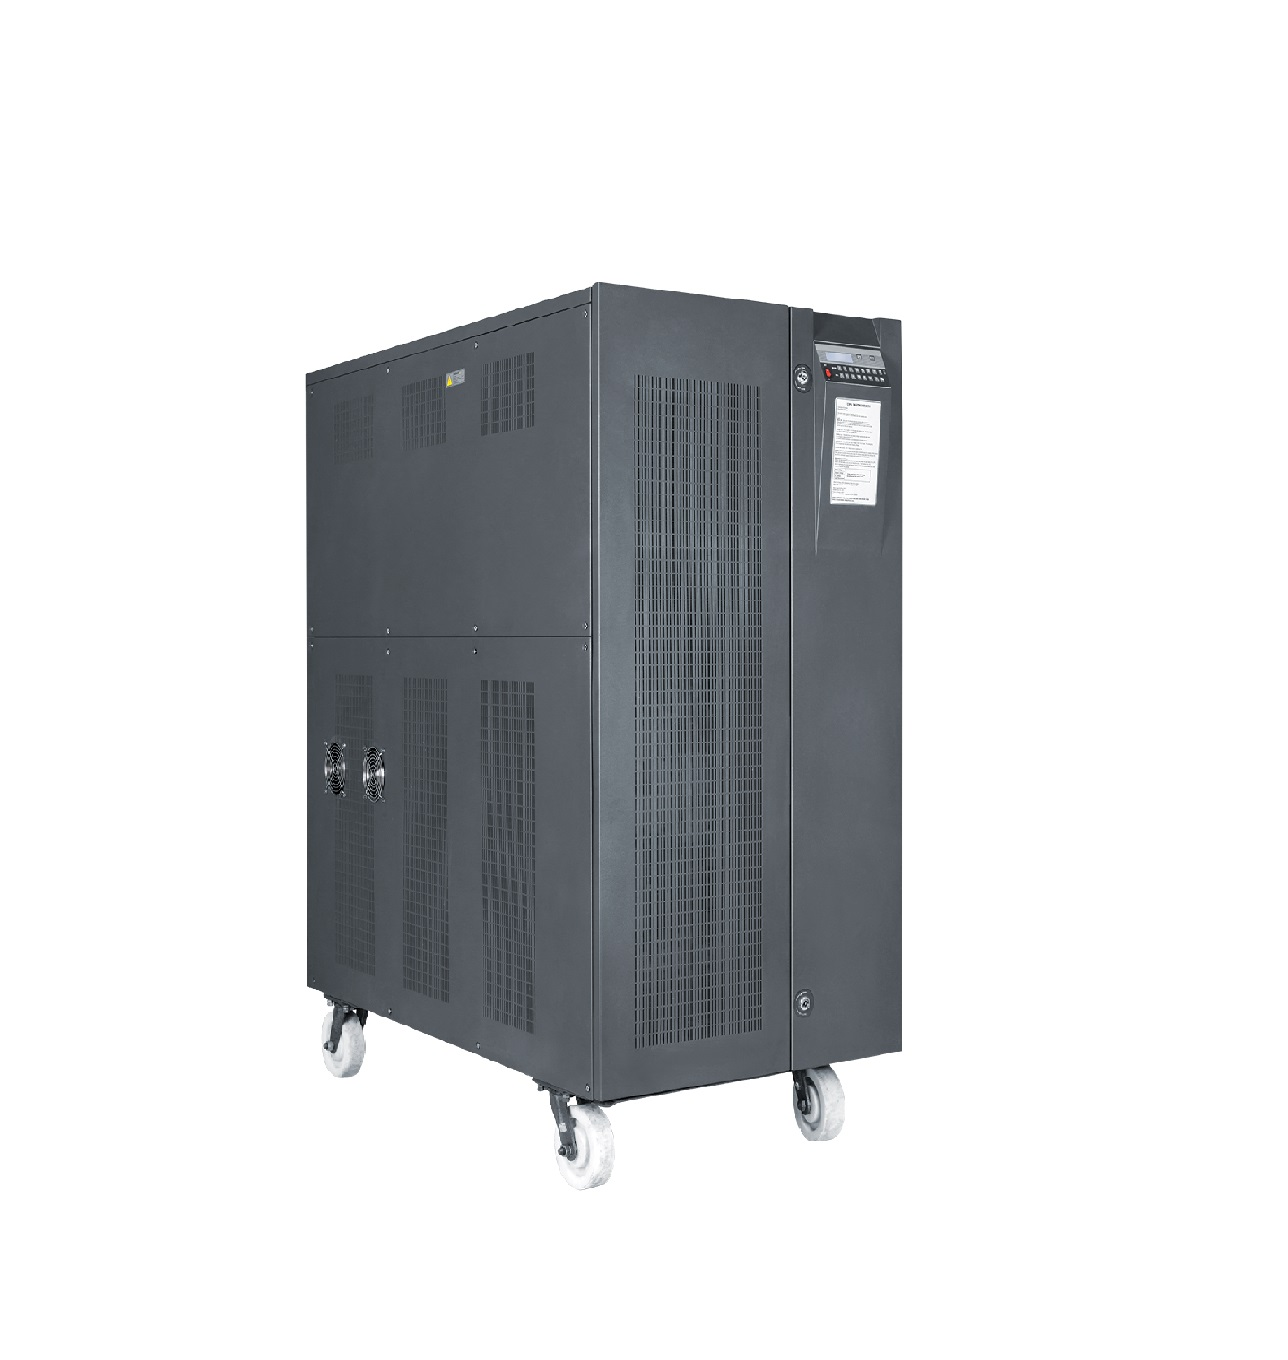 PFC-303IPL (for CT Scan & MRI machines) | Autoronica | Manufacturer of Online UPS for CT Scan and MRI Machines in Chandigarh,  Dealer of Online UPS for CT Scan and MRI Machines in Chandigarh - GLK3413